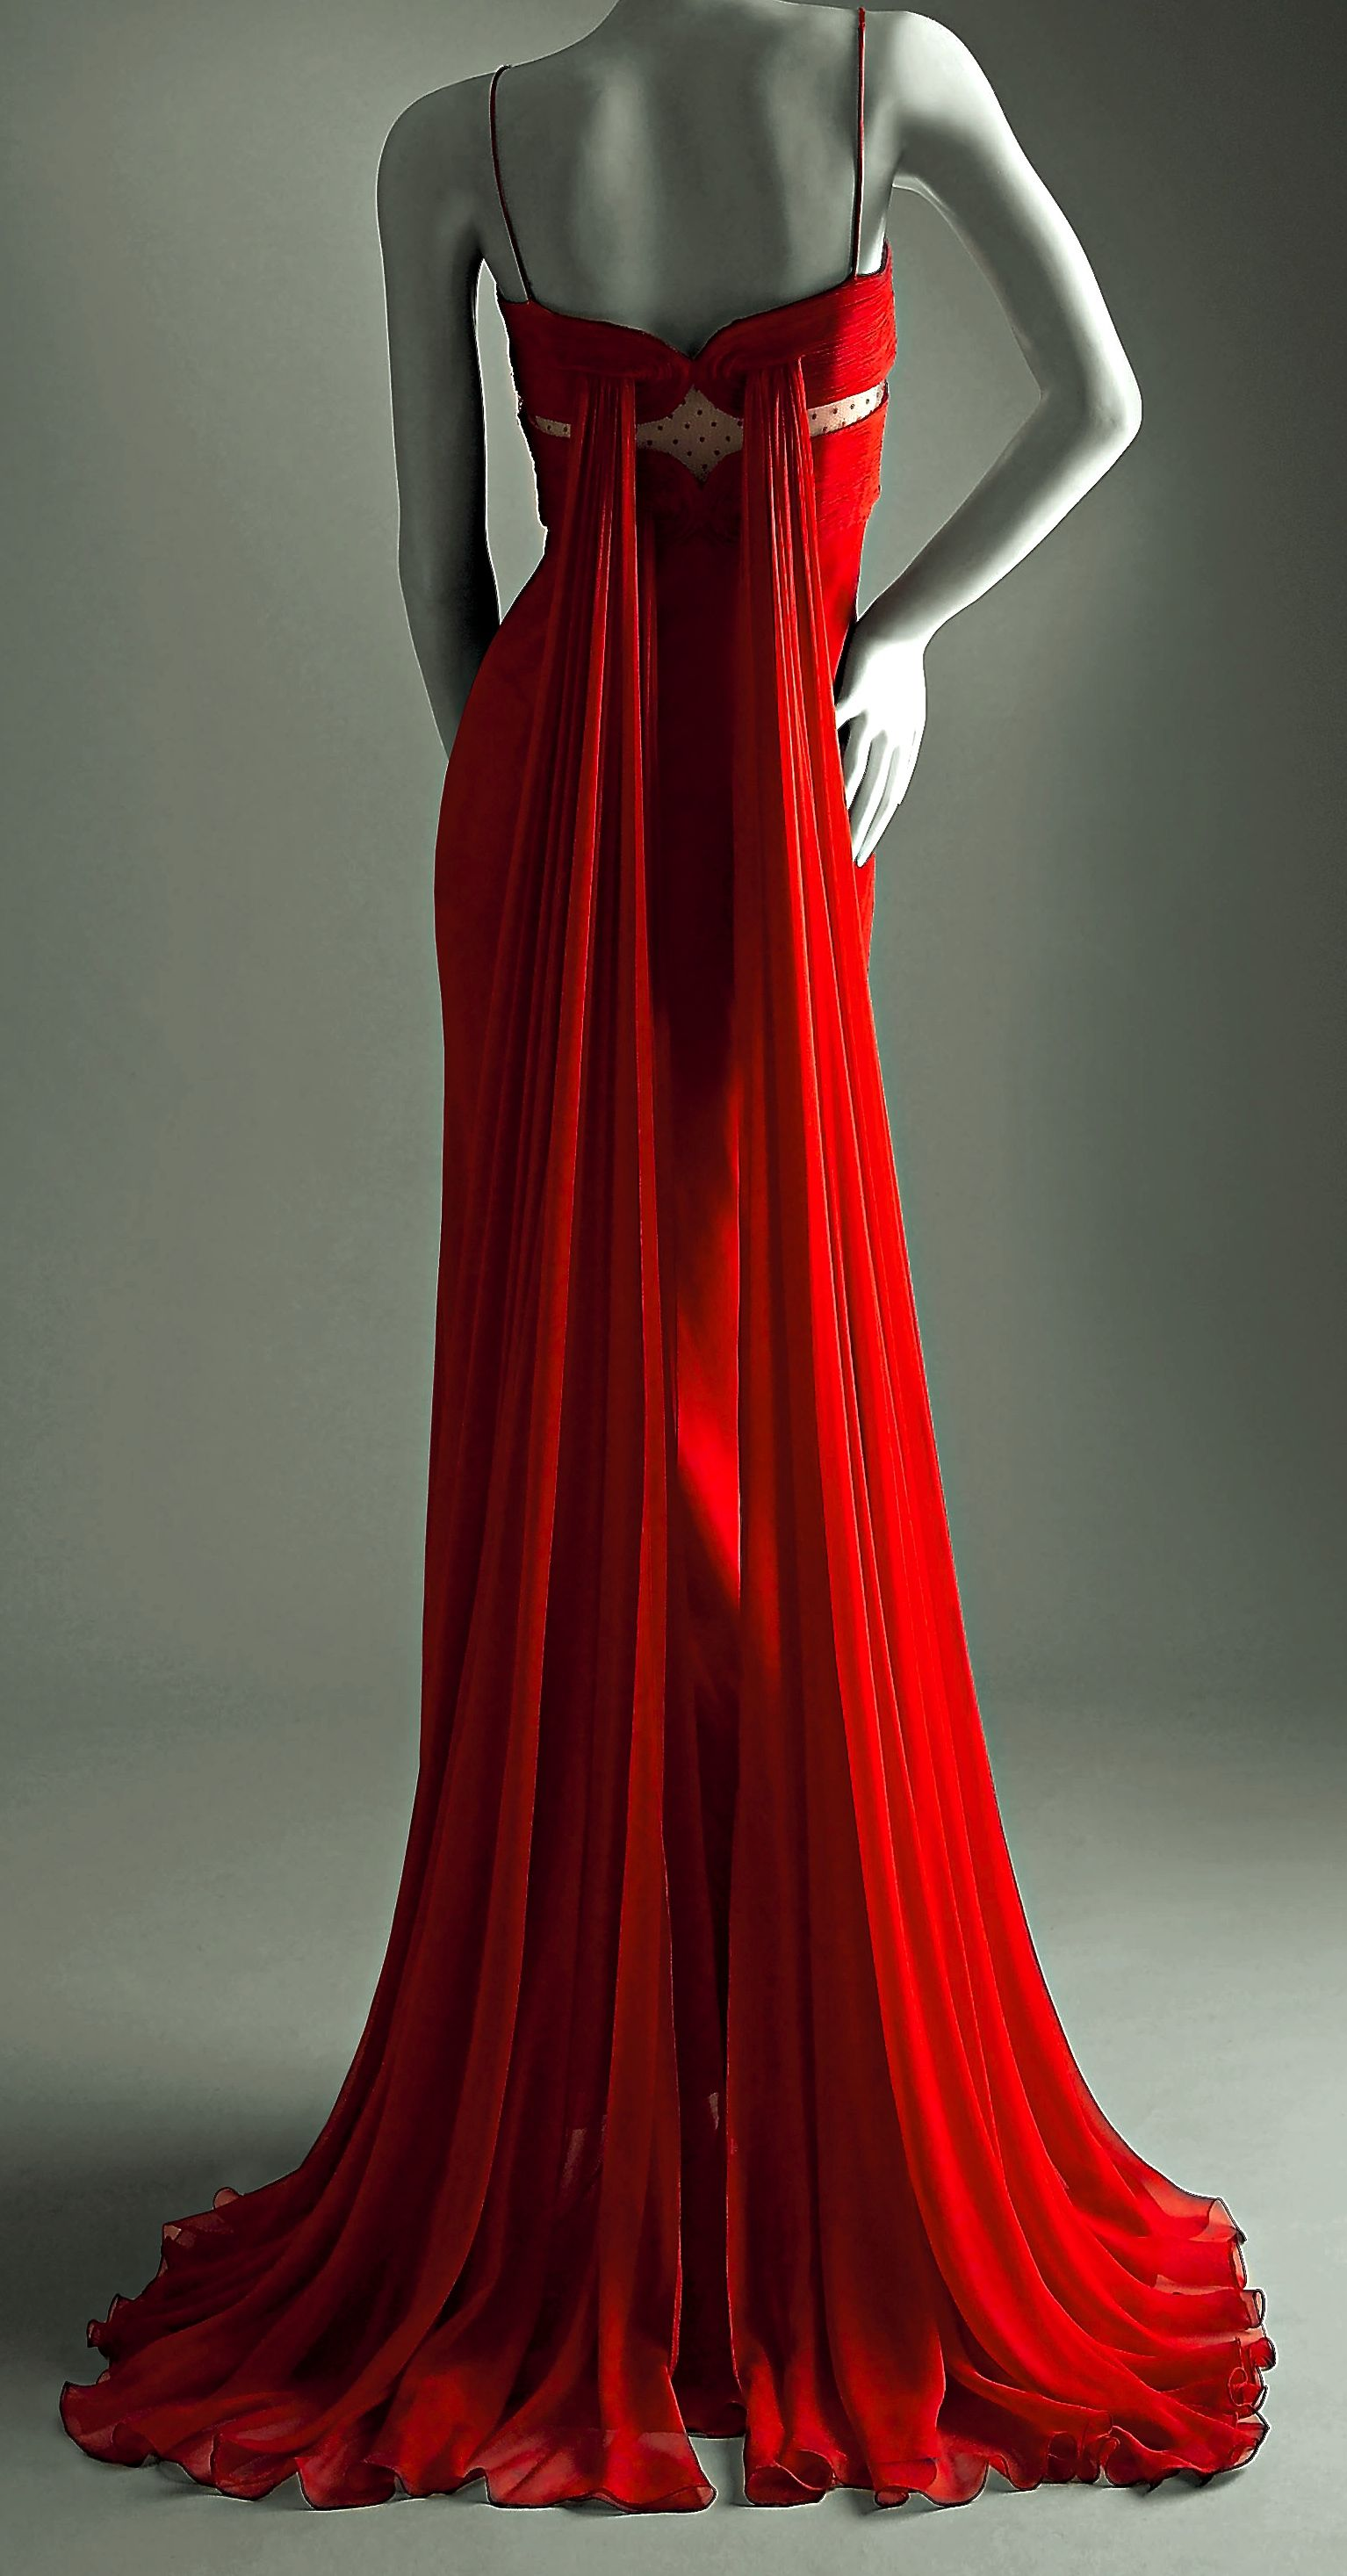 Valentino | The big day | Pinterest | Curves, Rock and Create